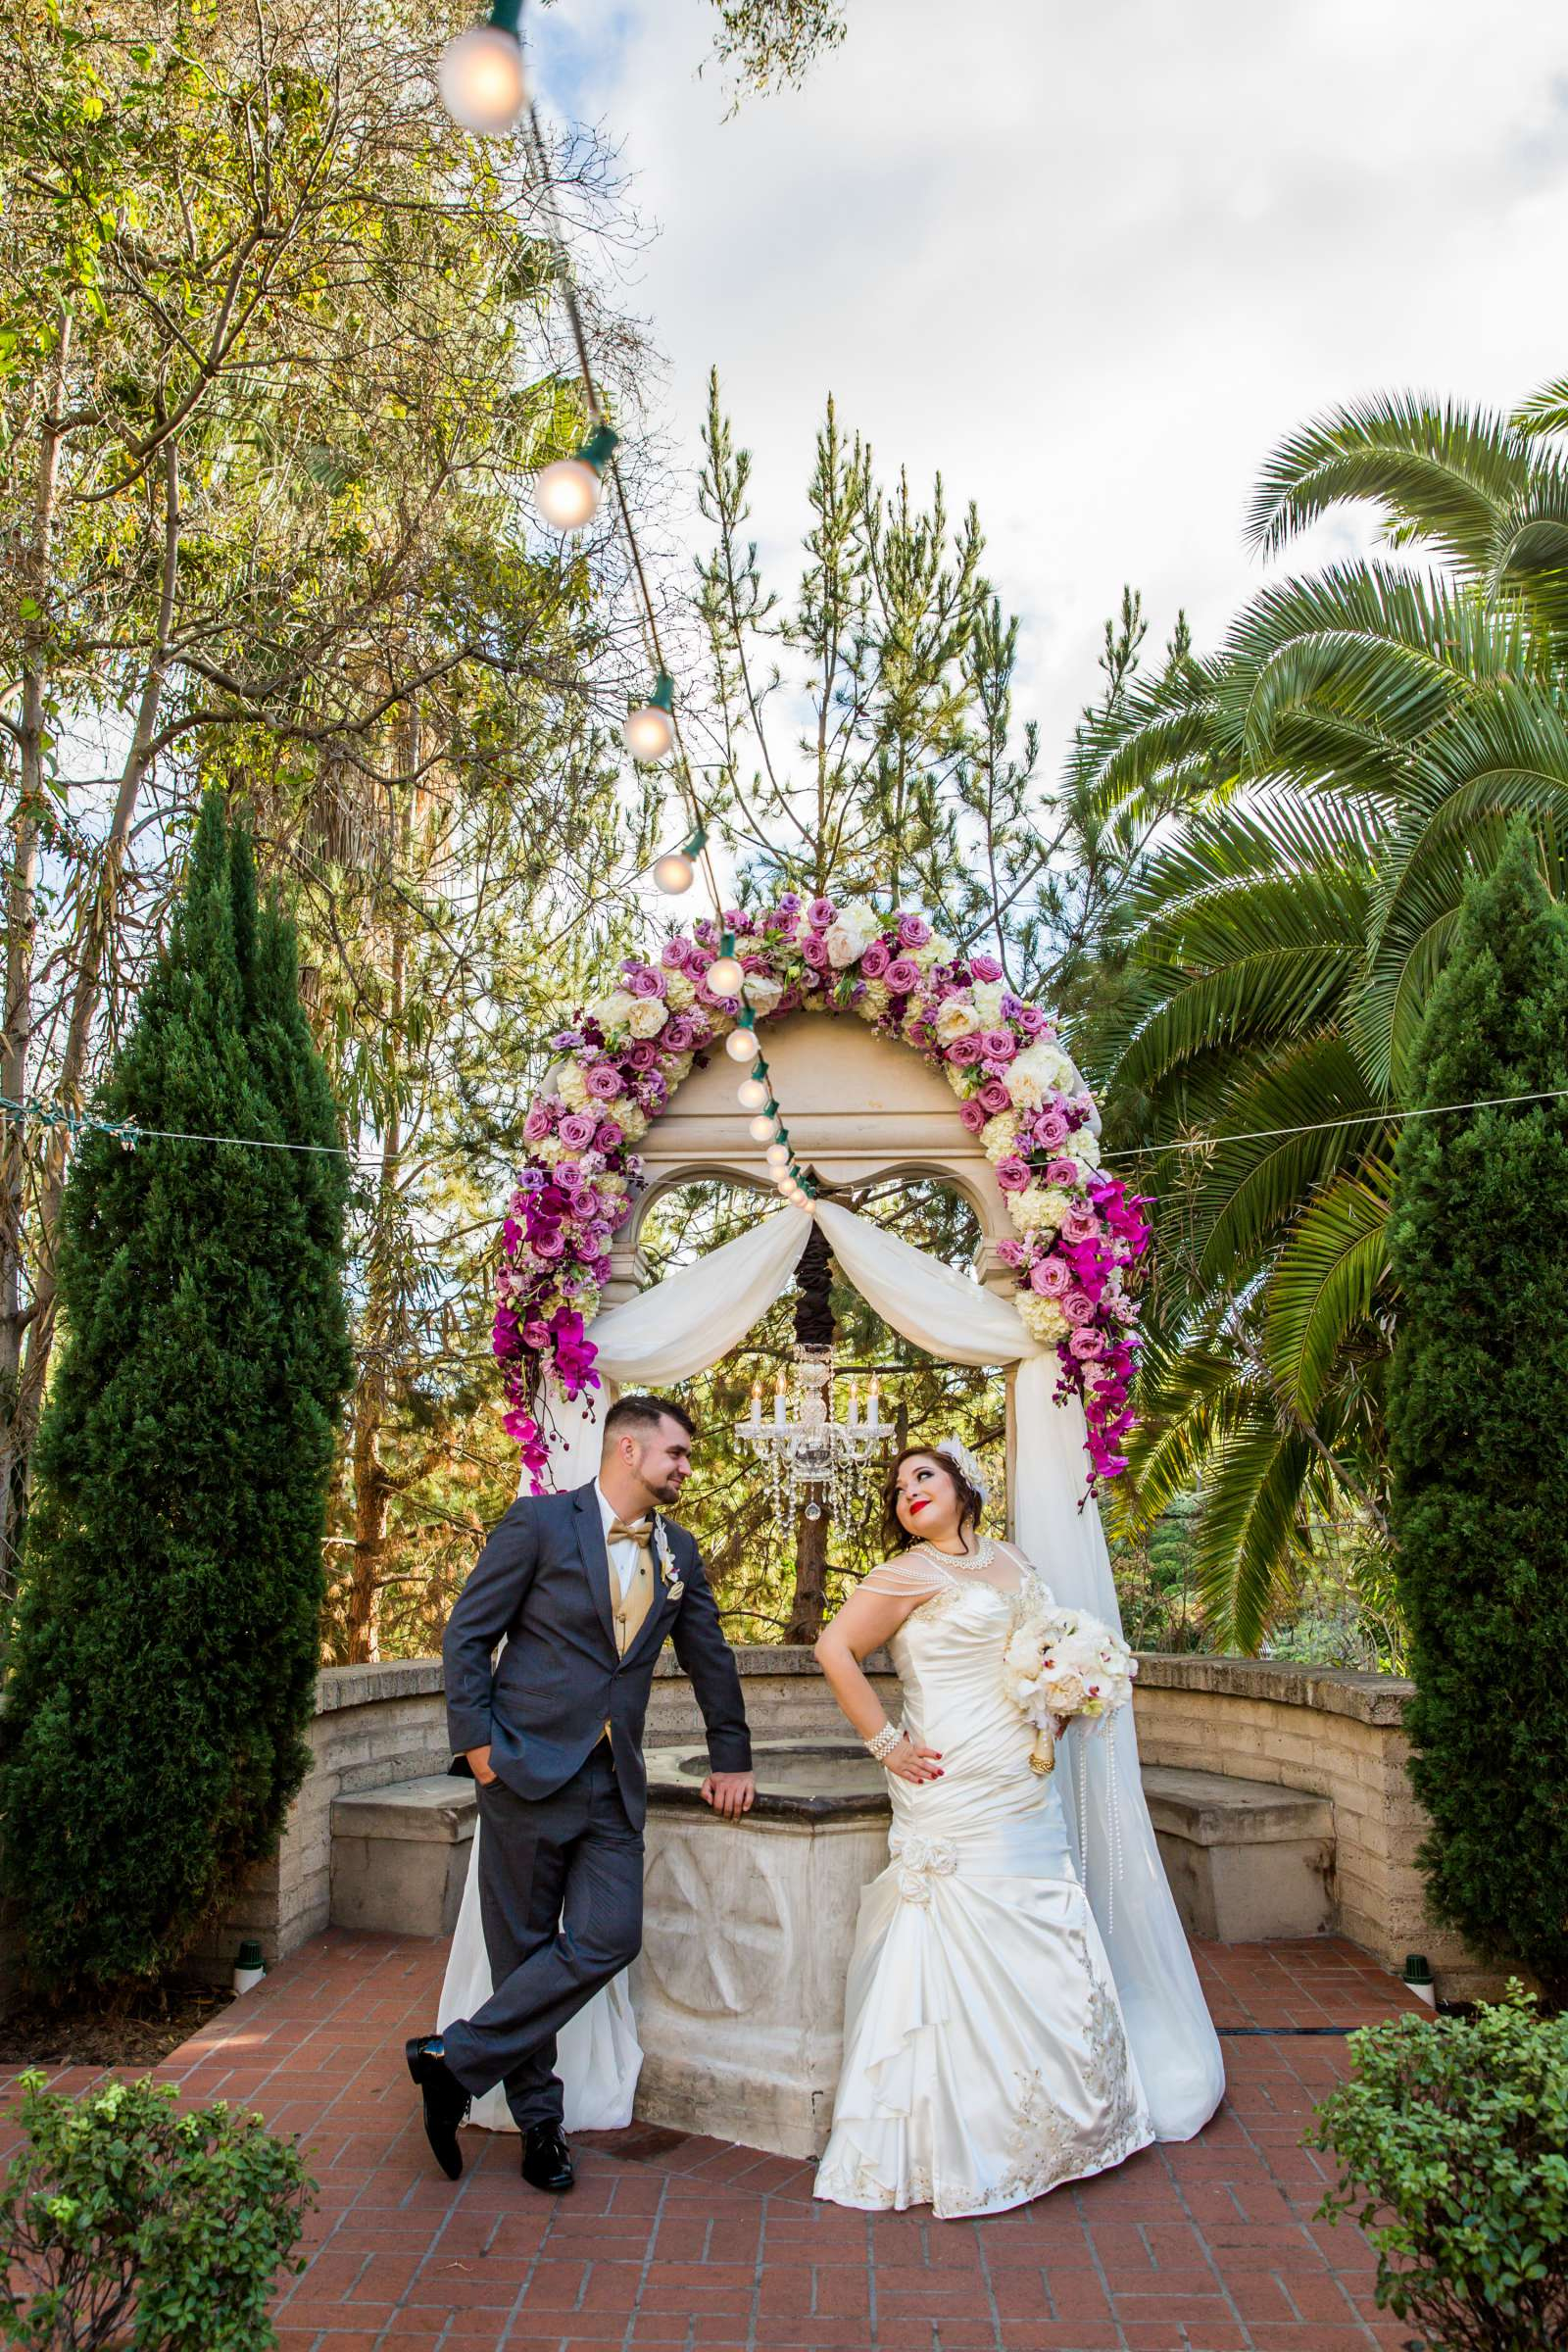 The Prado Wedding coordinated by Breezy Day Weddings, Aalis and Michael Wedding Photo #11 by True Photography